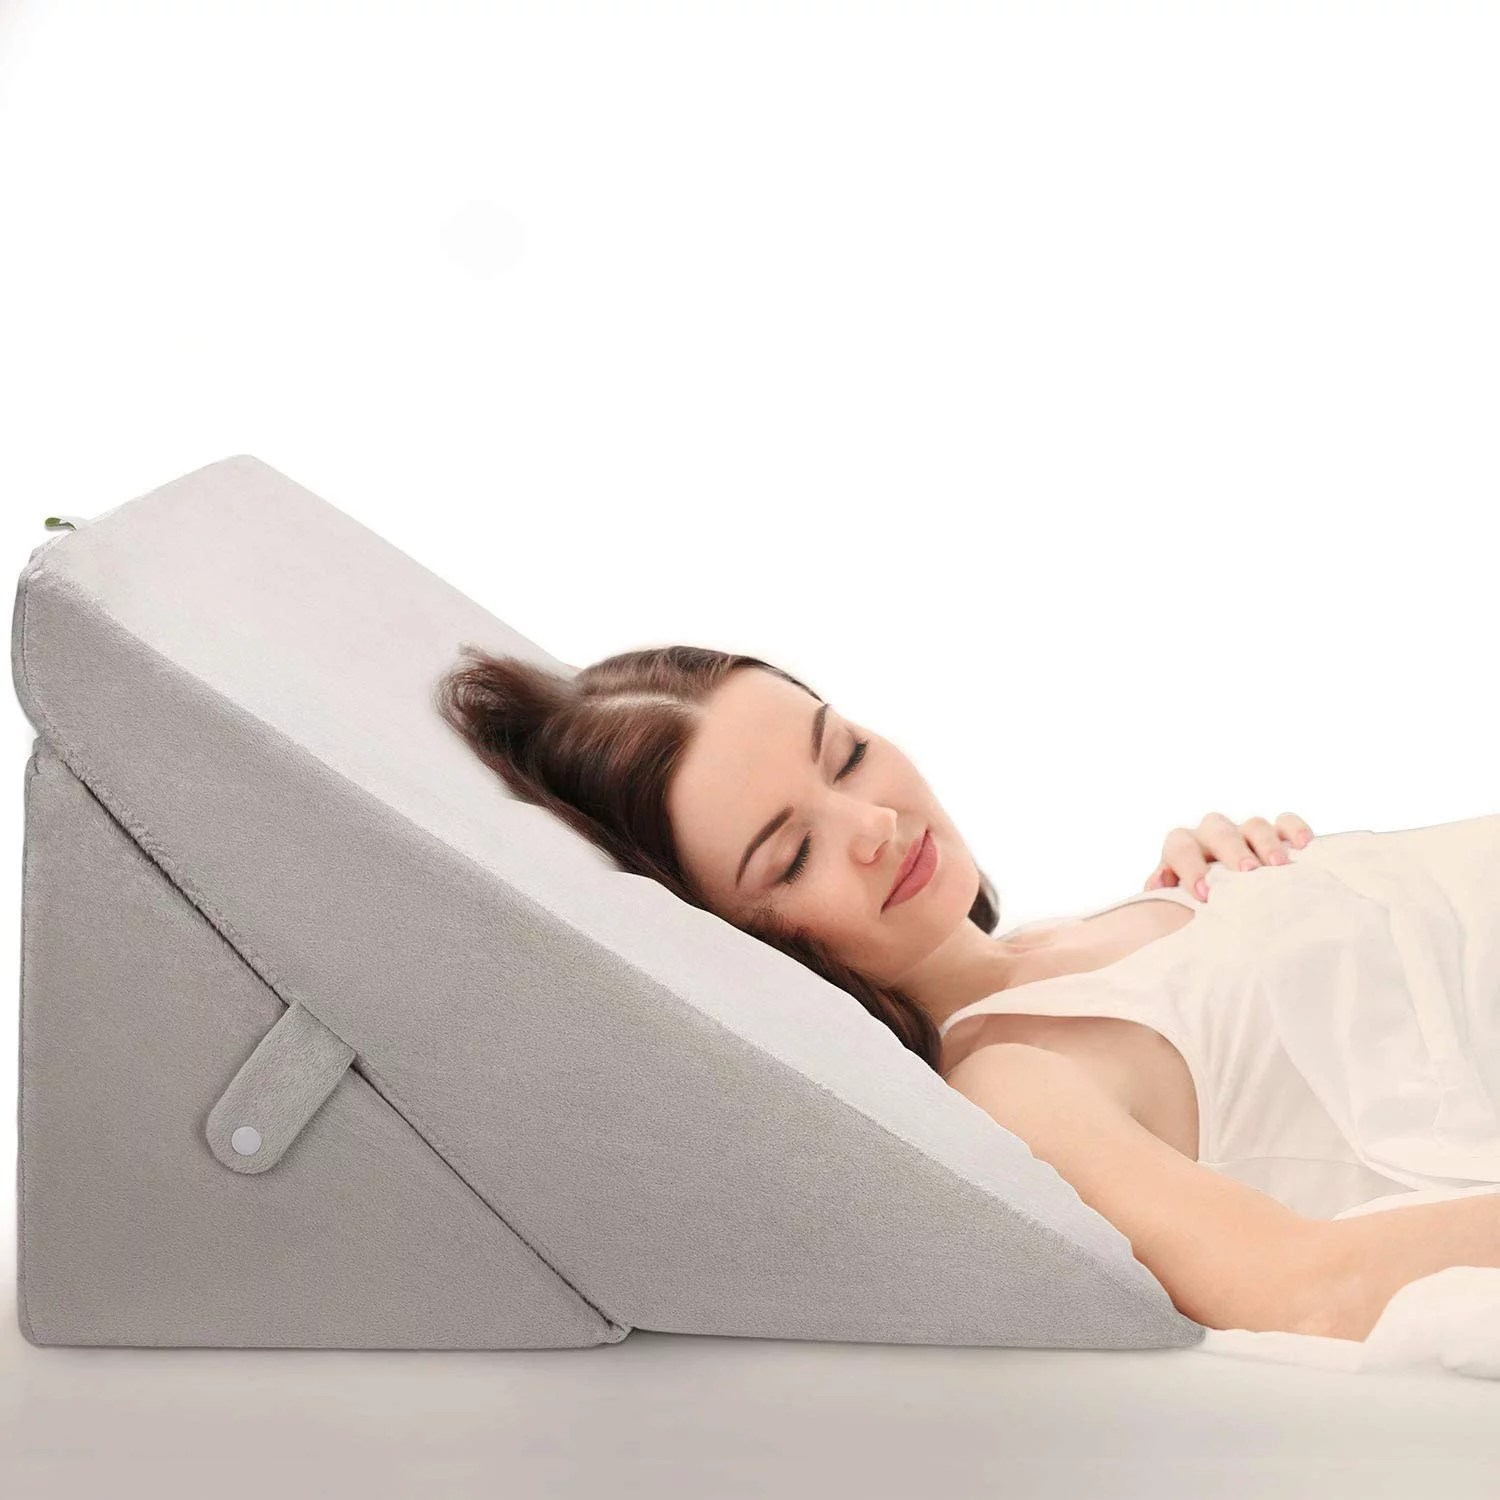 oasisspace bed wedge pillow adjustable 8 12 inch folding memory foam sleeping pillow incline cushion system for legs and back pain with washable